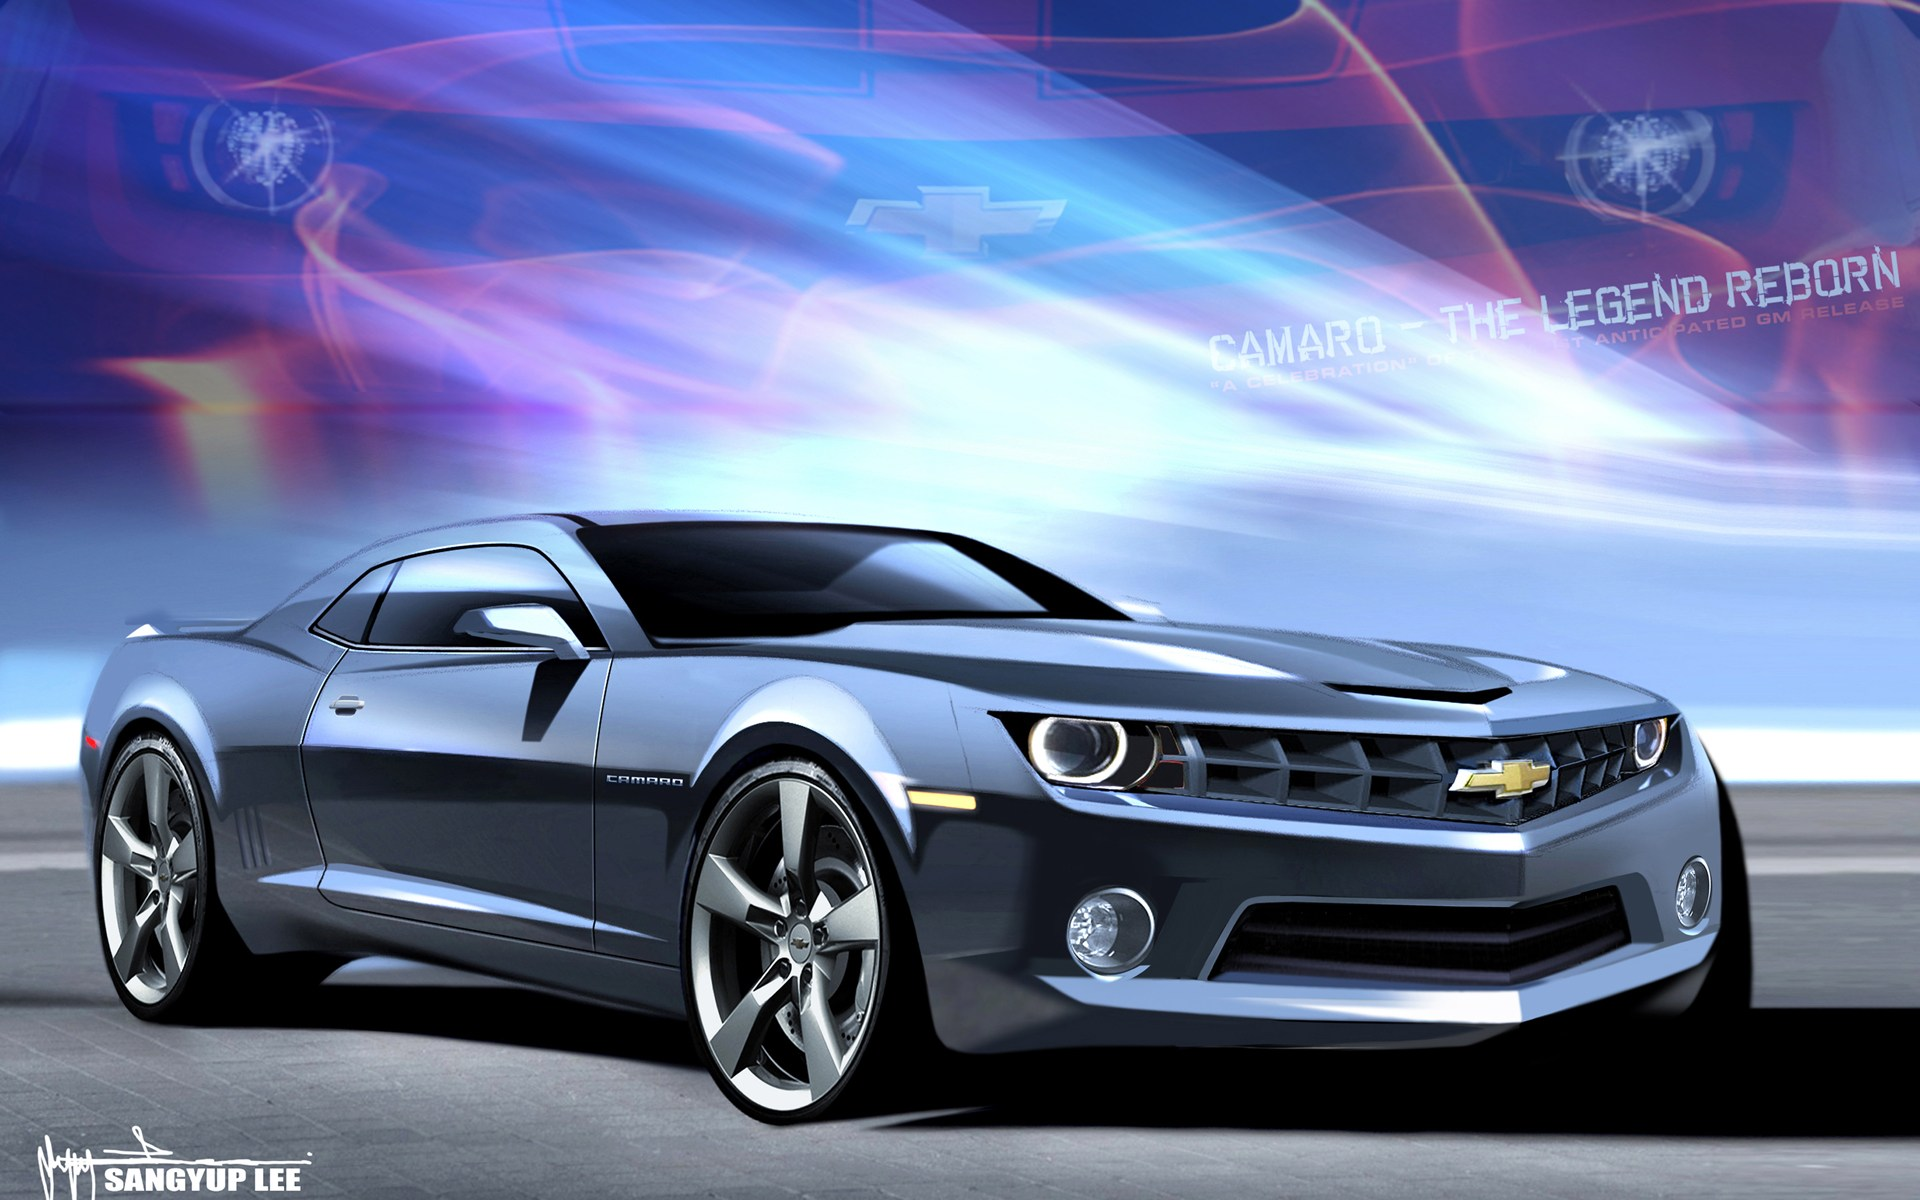 Chevrolet hd photo - 1